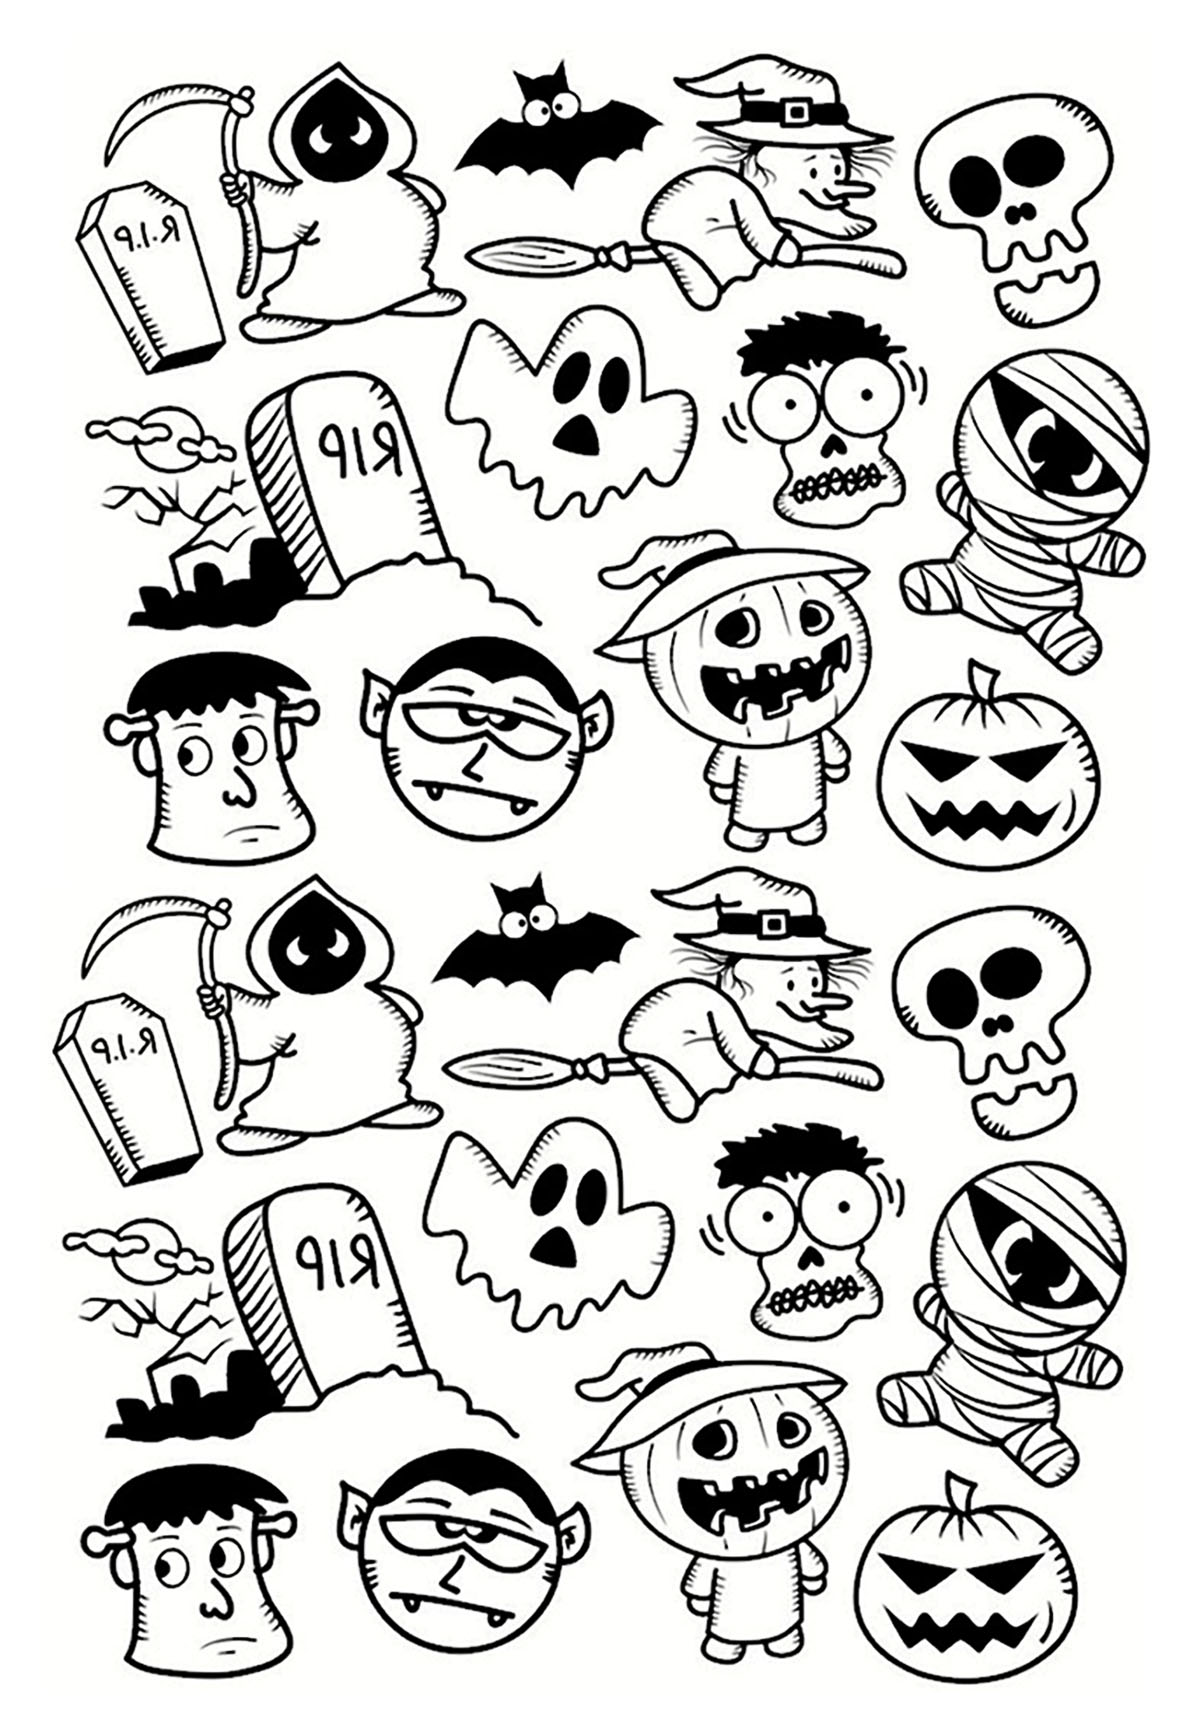 halloween personnages doodle coloriage halloween coloriages pour enfants page 3. Black Bedroom Furniture Sets. Home Design Ideas